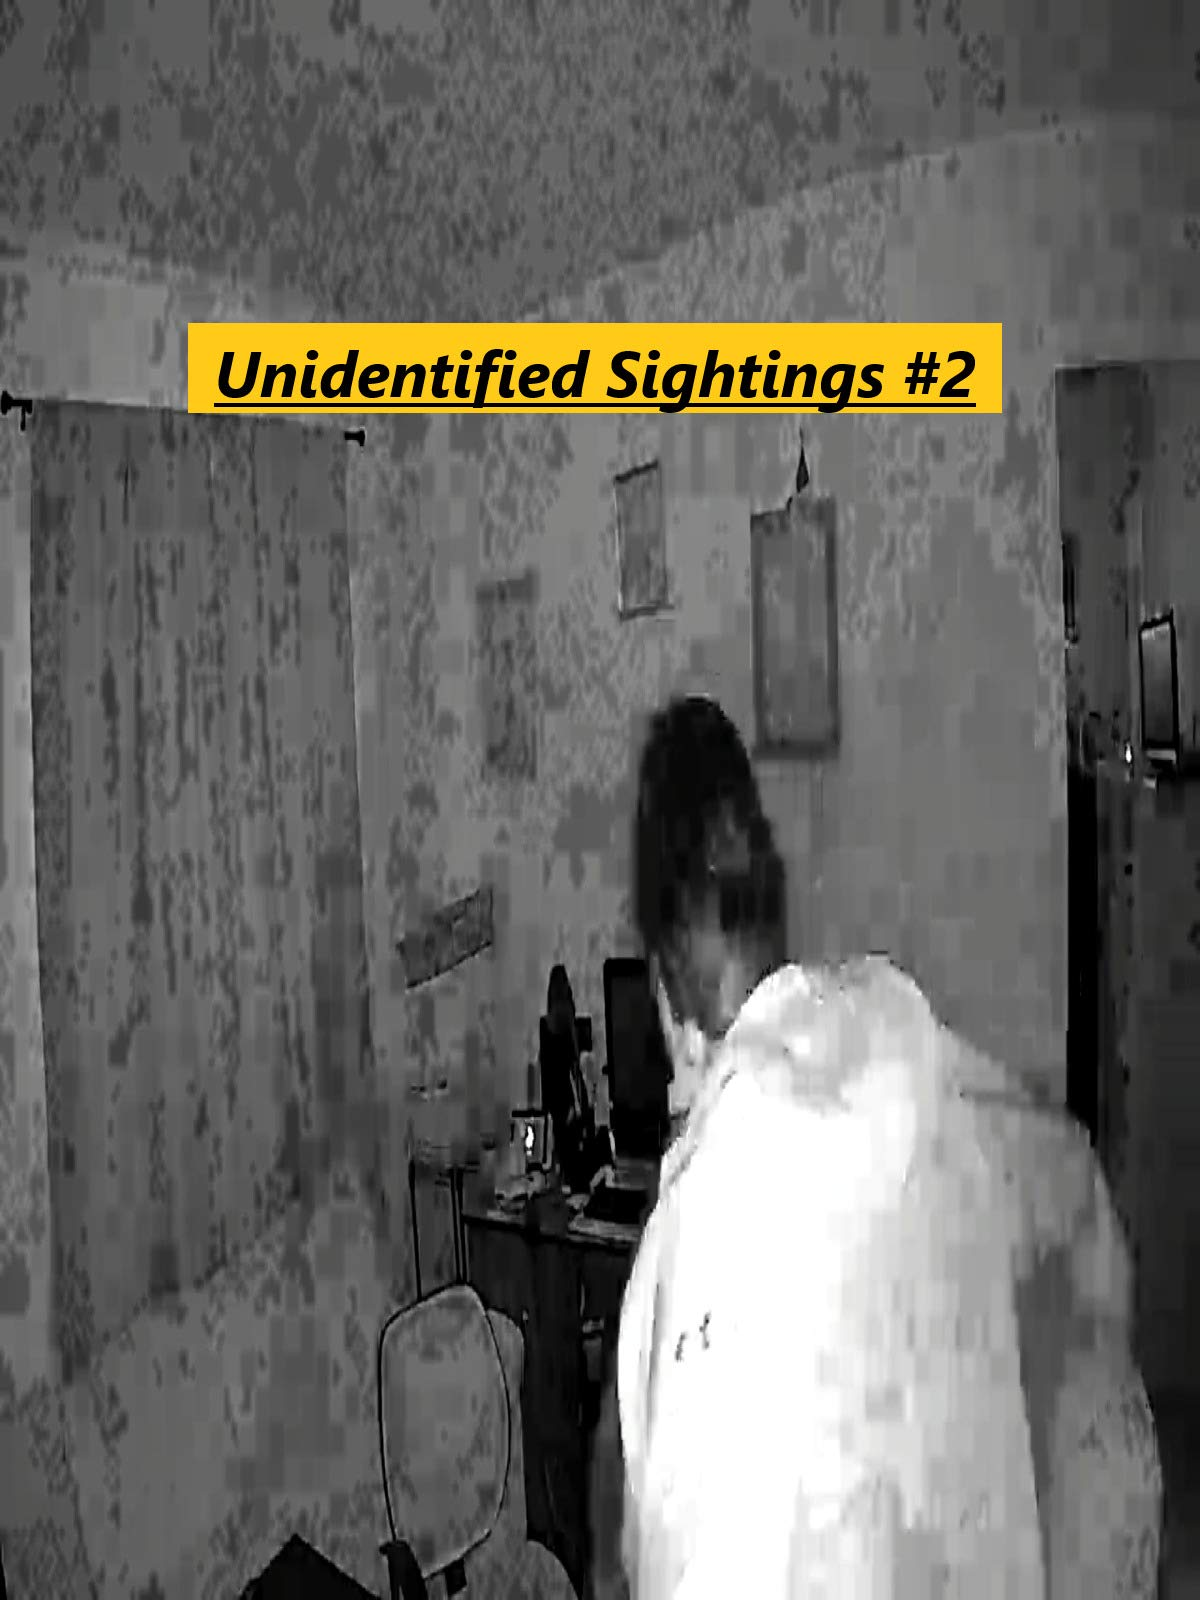 Clip: Unidentified Sightings #2